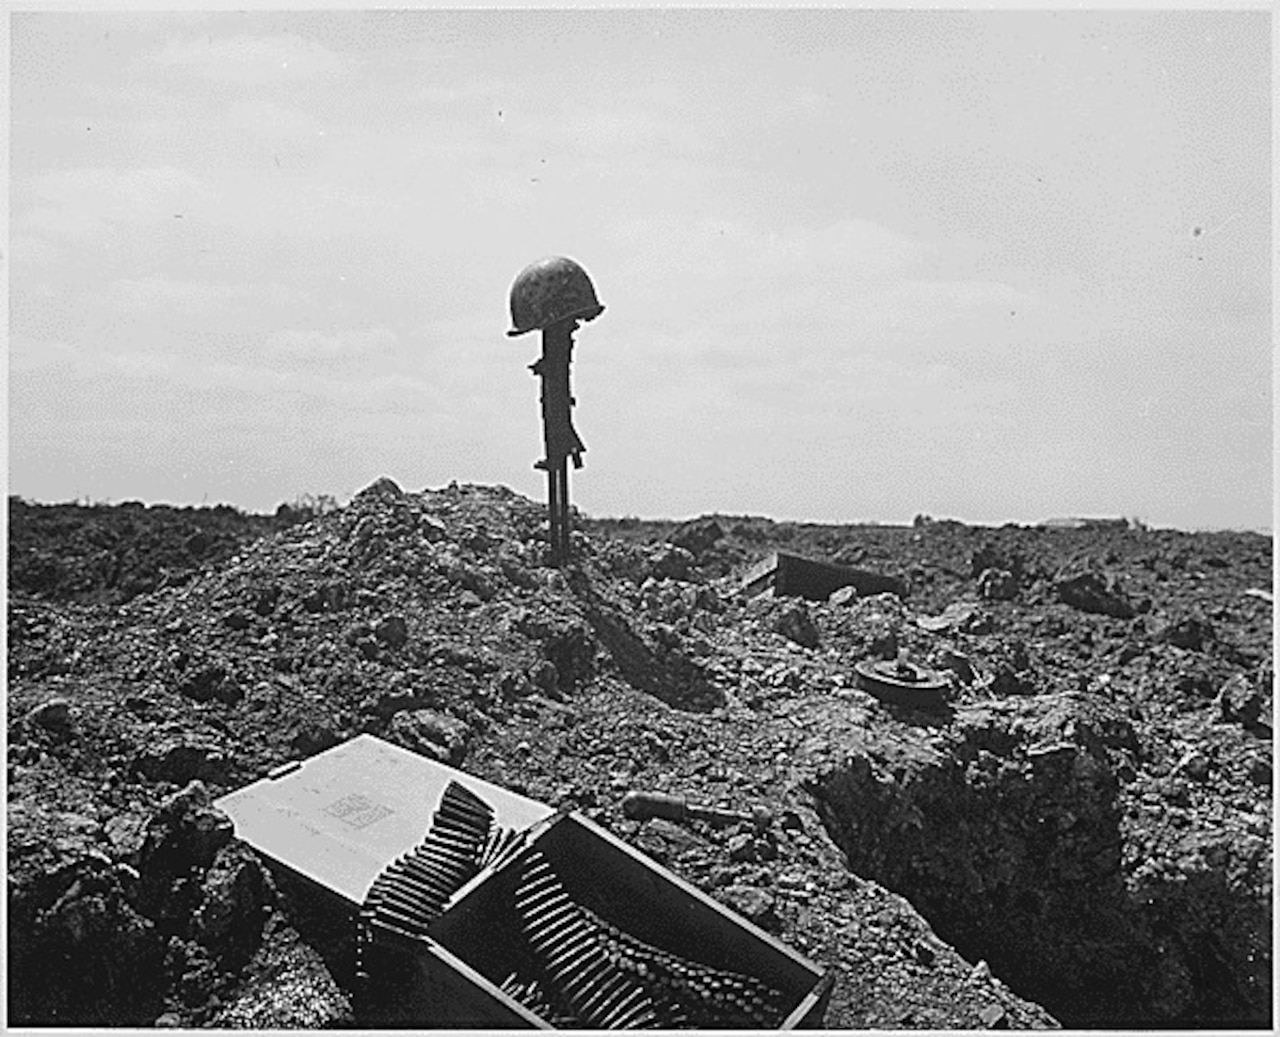 A soldier's rifle sticks straight up in the sand on a beach with a helmet on it. A box of ammo sits in the foreground.